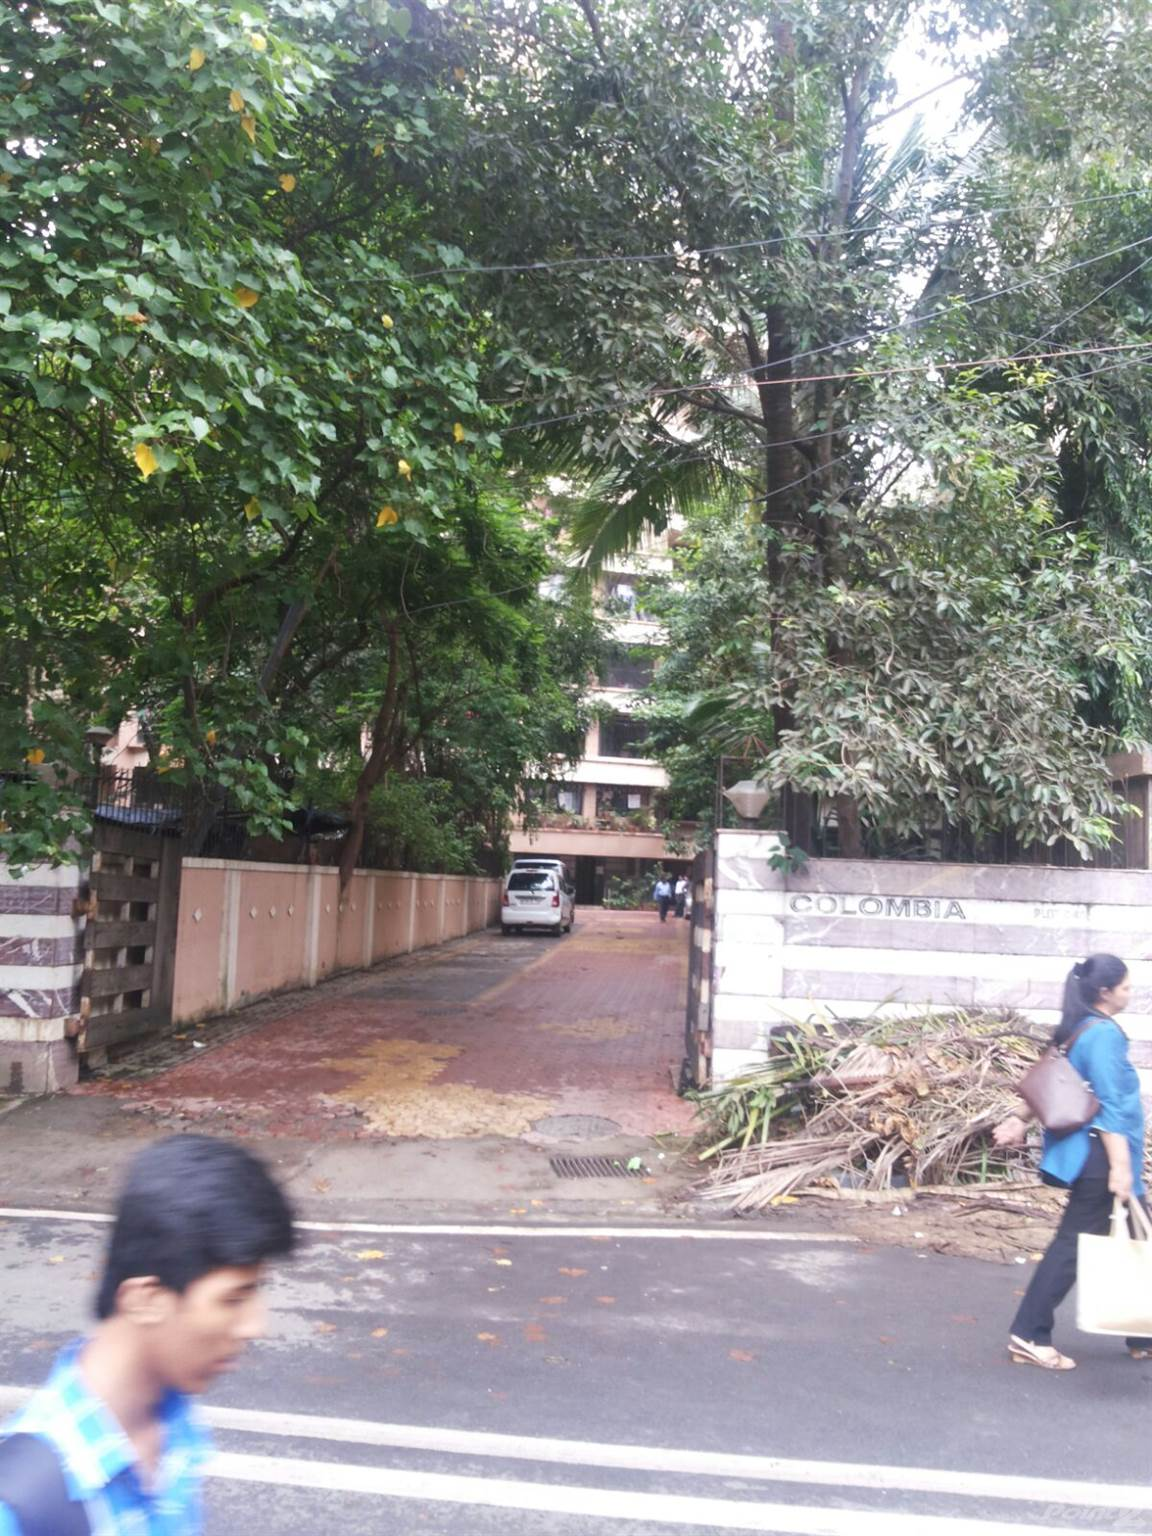 Residential For Sale in Colombia Building, St Dominic Road Bandra West, Bandra, Maharashtra ,400050  , India